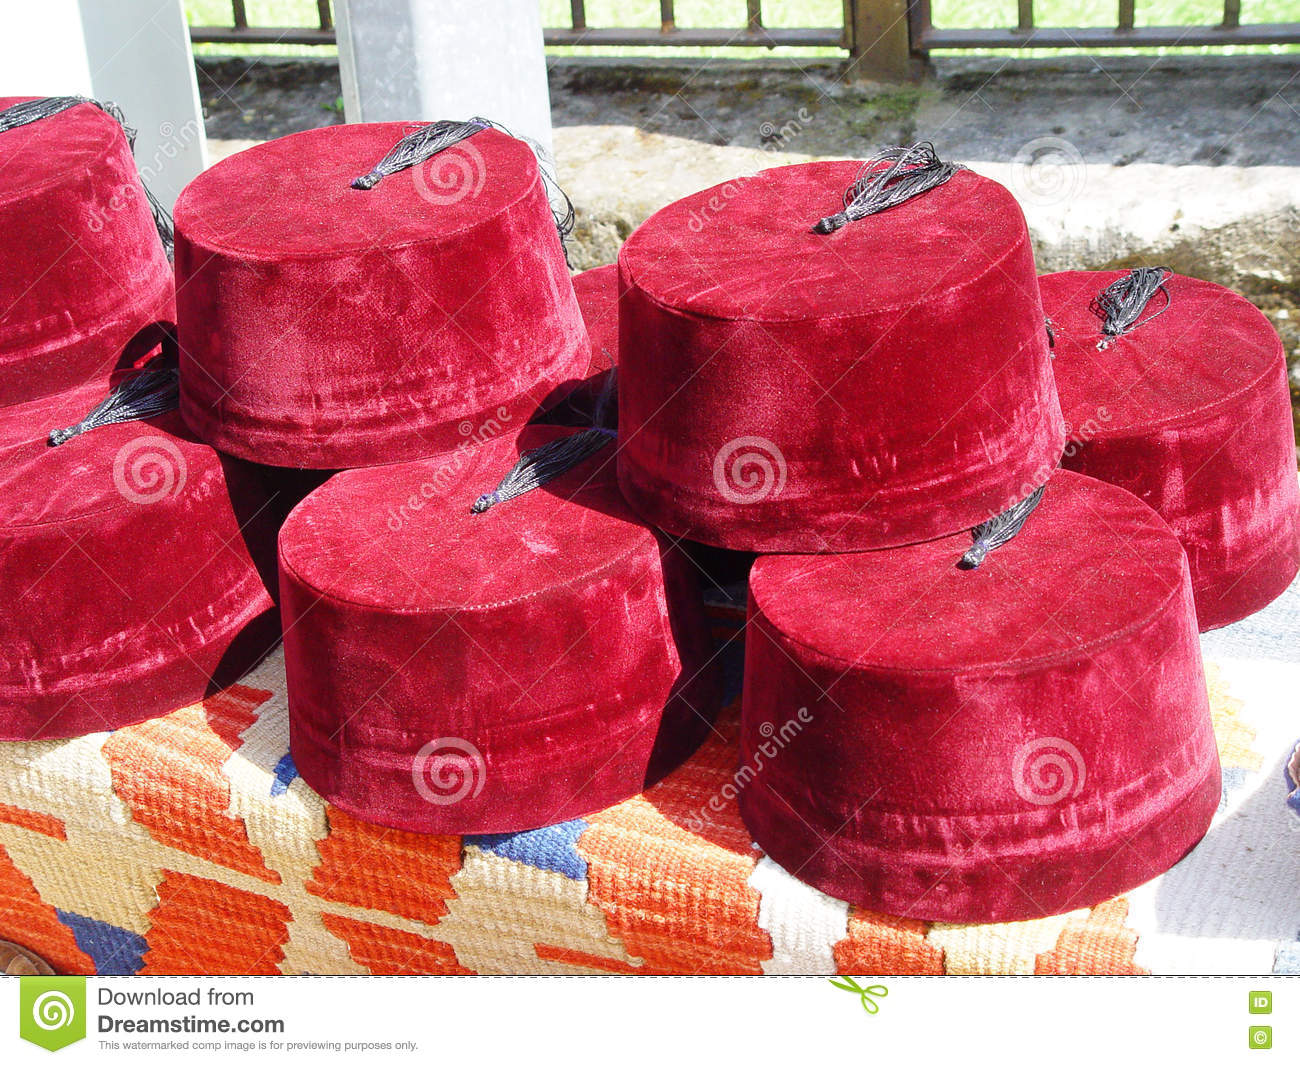 Turkish Fez For Sale On The Local Market. Turkey Stock Image - Image ... 81b0cae137f